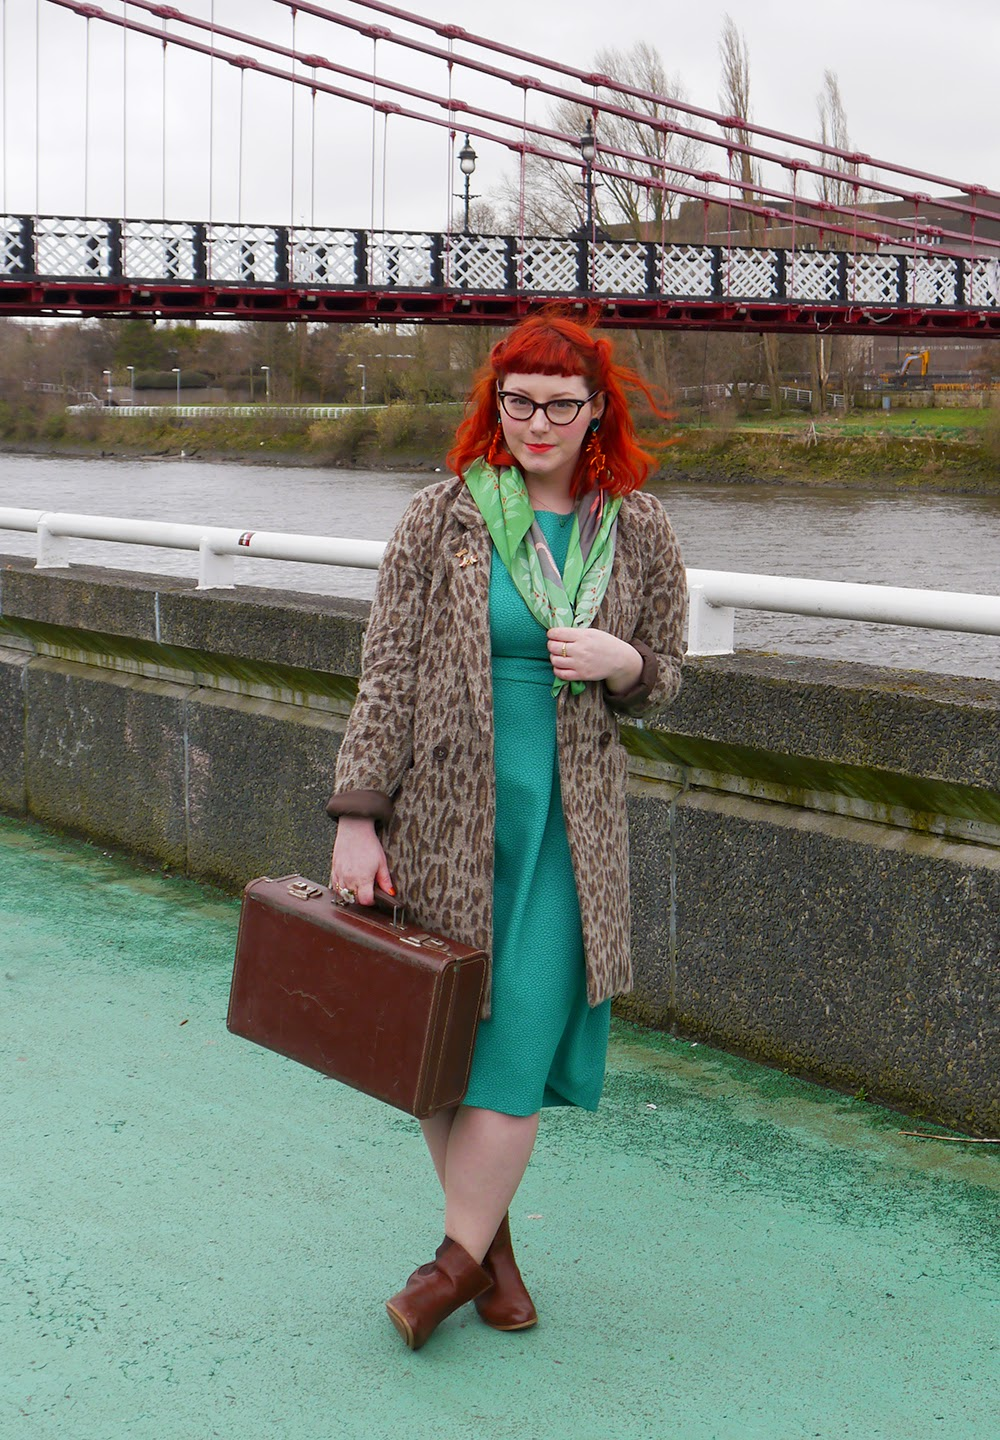 Glasgow, Girl Gang, Girl Gang Weekender, Glasgow, Clyde side, Scottish Bloggers, Scottish street style, styled by Helen, Creature Feature style, red head, red haired blogger, Lou Taylor ant earrings, H&M green dress, Karen Mabon scarf, Warehouse leopard print coat, vintage suitcase